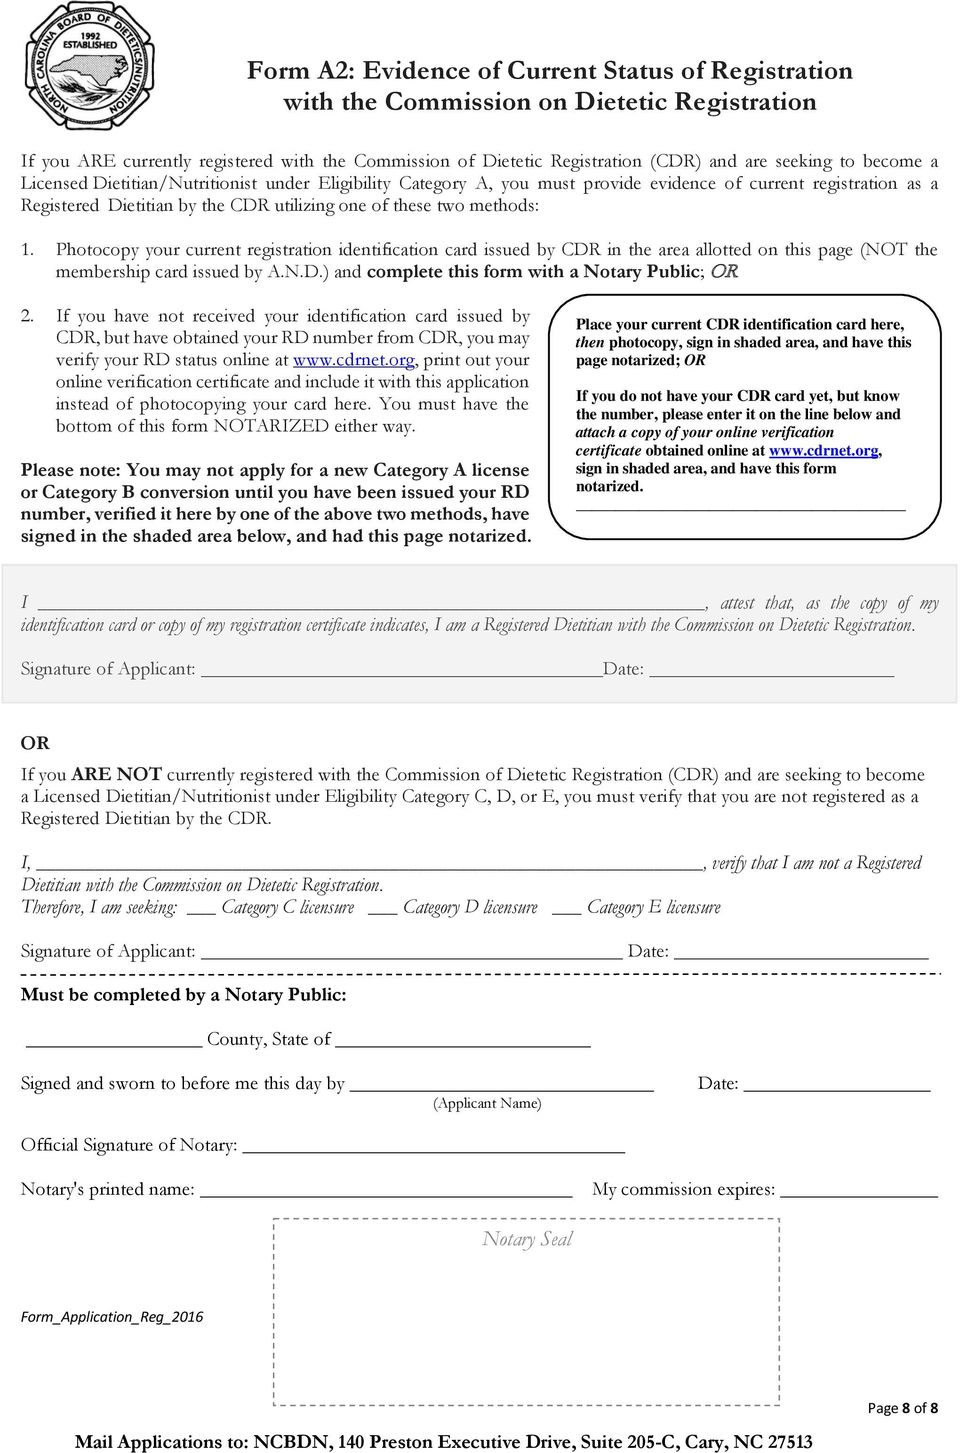 Photocopy your current registration identification card issued by CDR in the area allotted on this page (NOT the membership card issued by A.N.D.) and complete this form with a Notary Public; OR 2.